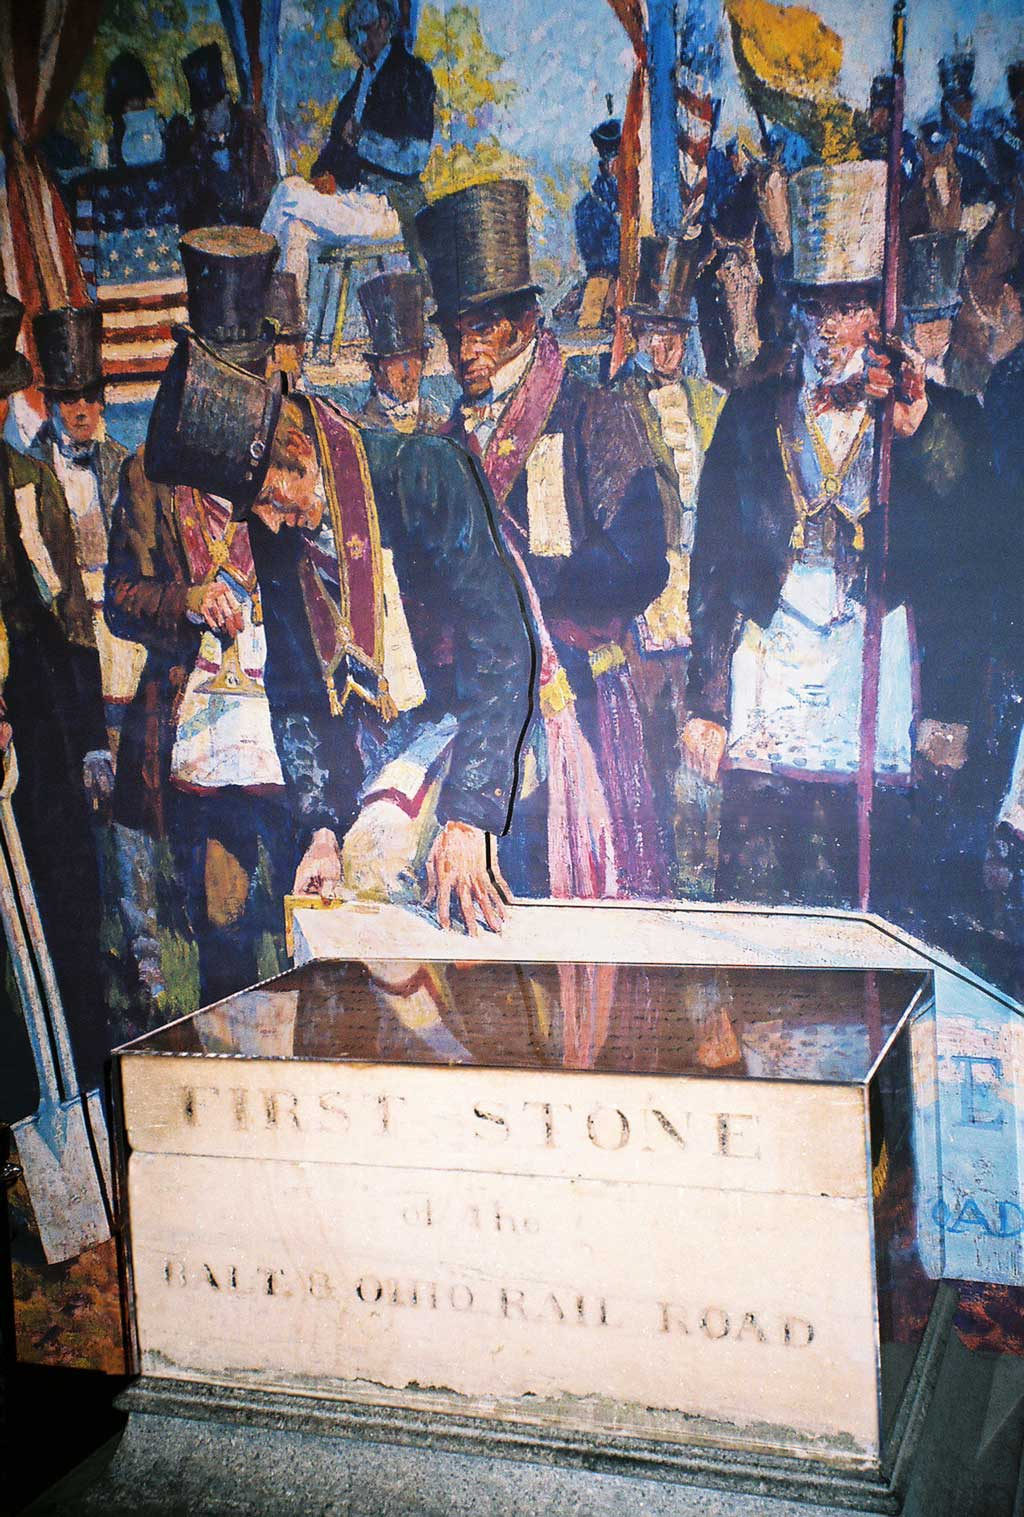 Cornerstone of the Baltimore and Ohio Railroad, being laid on July 4, 1828 by Charles Carroll of Carrollton, last surviving signer of the Declaration of Independence.